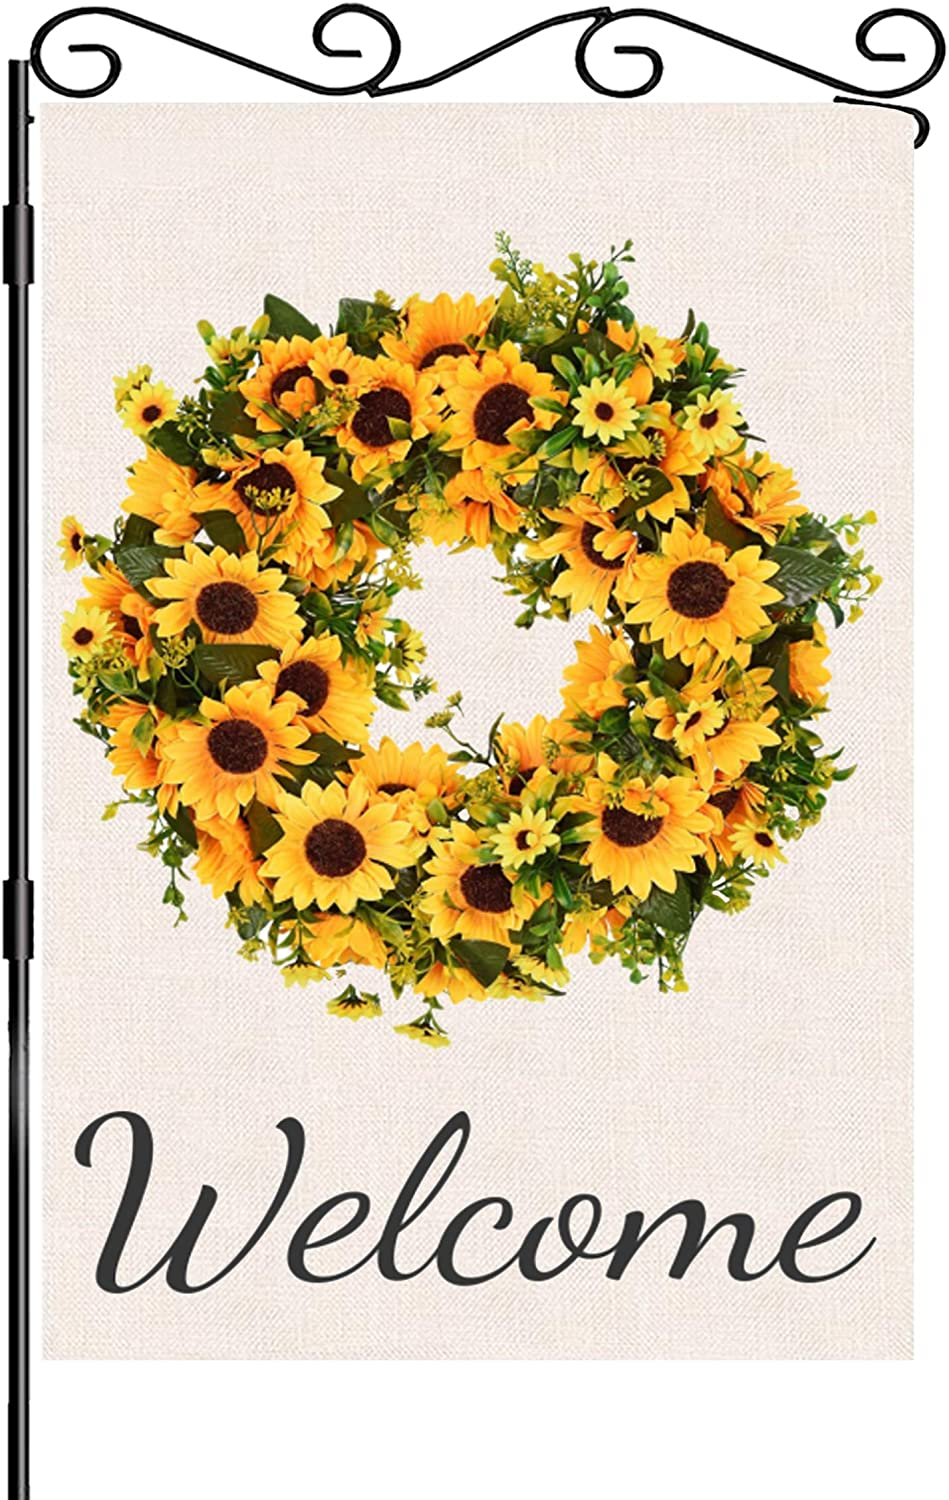 NICEN Sunflower Wreath Garden Flag Welcome Wreath Garden Flag Double Sided Small Flag for Yard House Decor Seasonal Burlap Flag for Spring Summer Fall Winter, 12.5x18 Inch